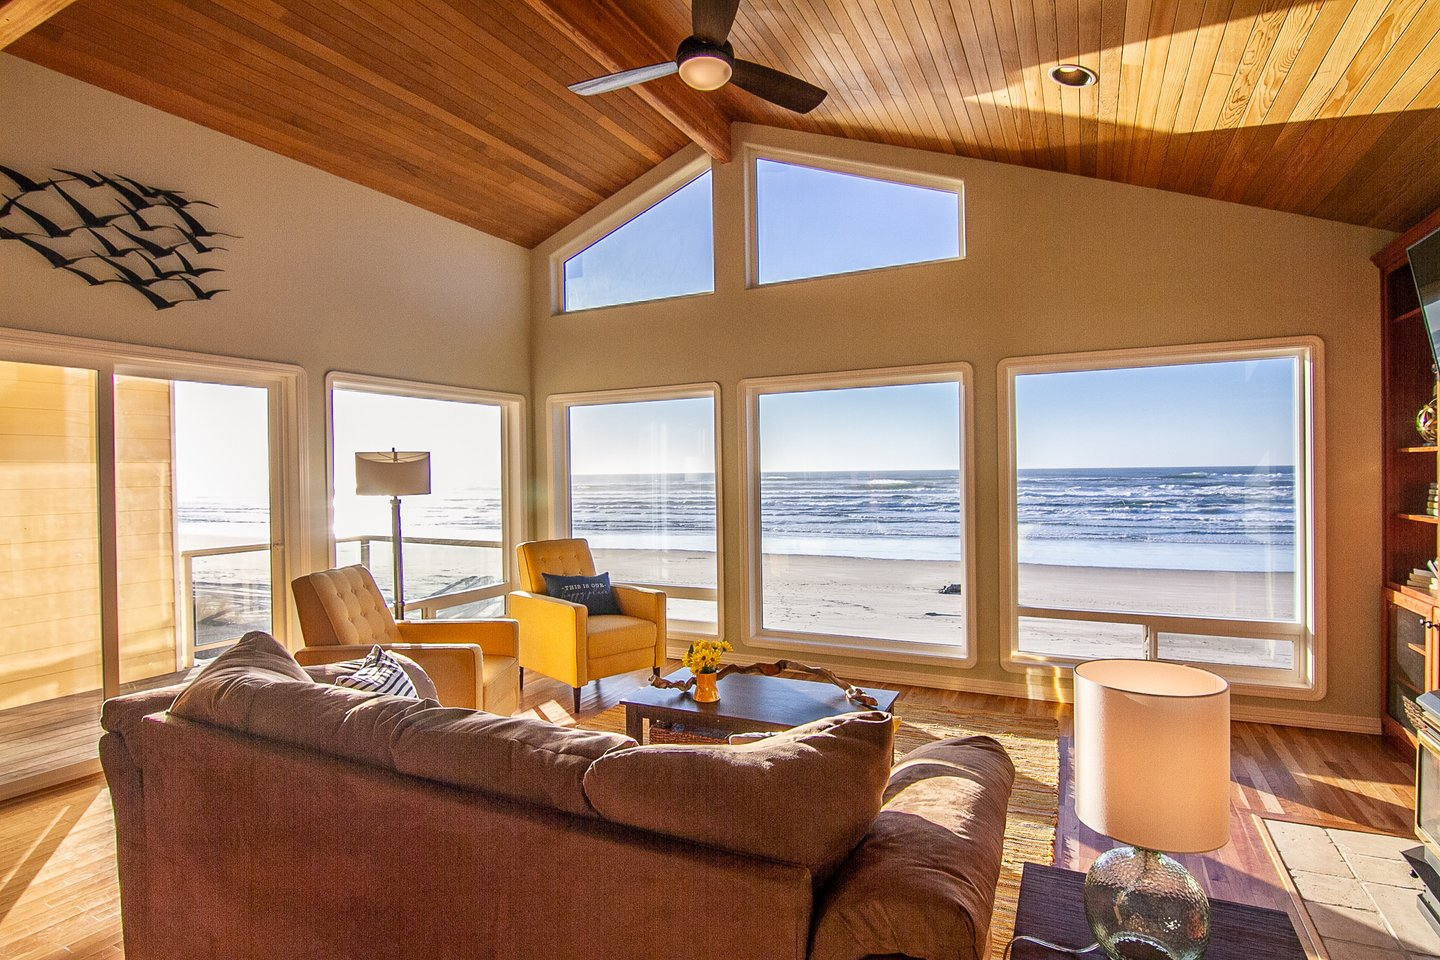 Vast ocean views can be enjoyed from anywhere in the upstairs great room.